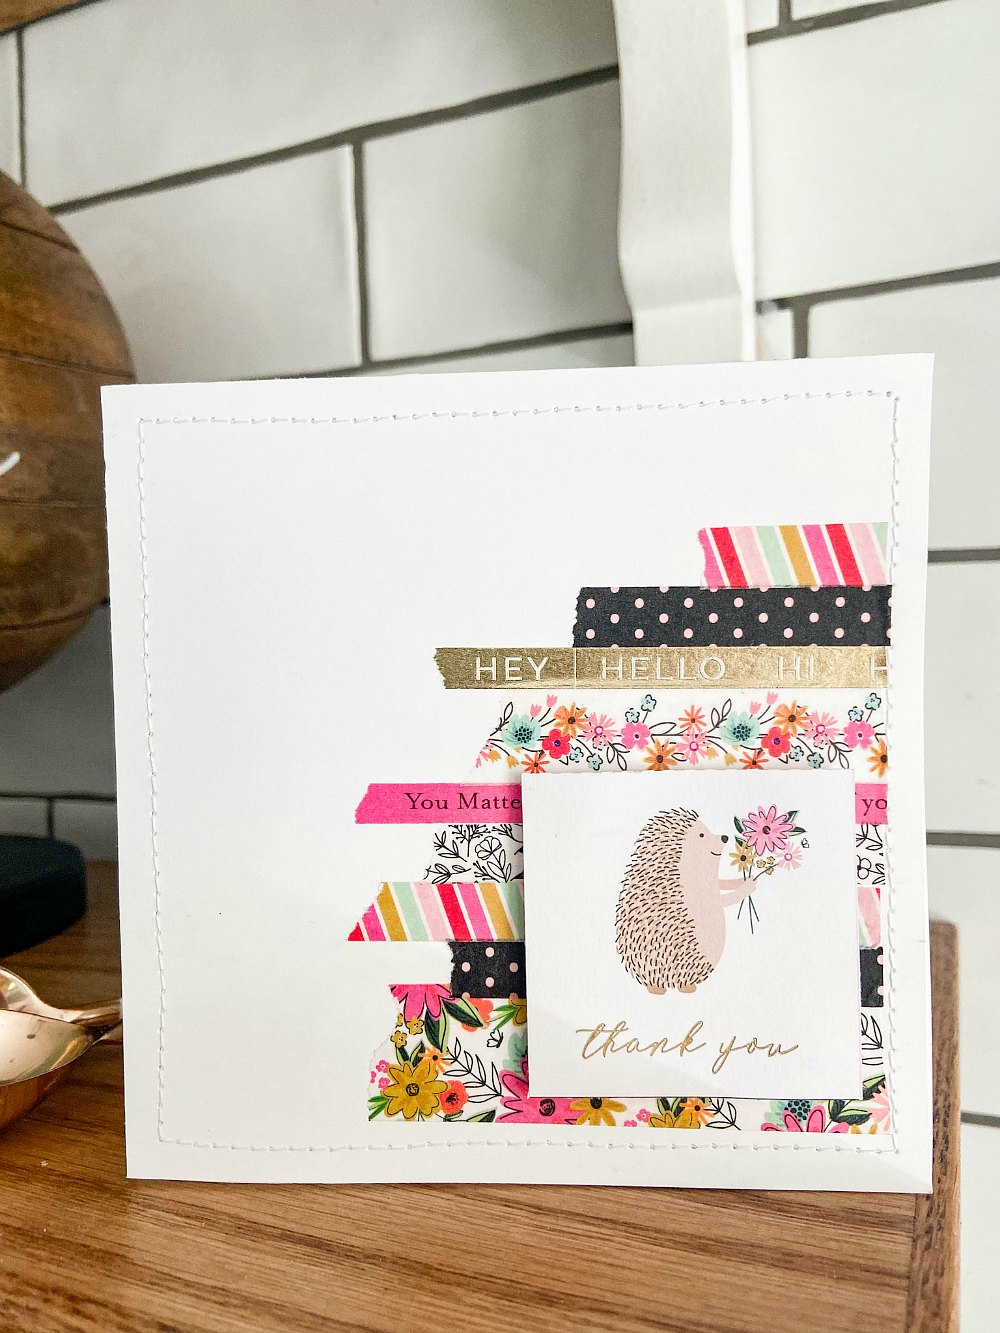 Hedgehog washi tape thank you card with full instructions.